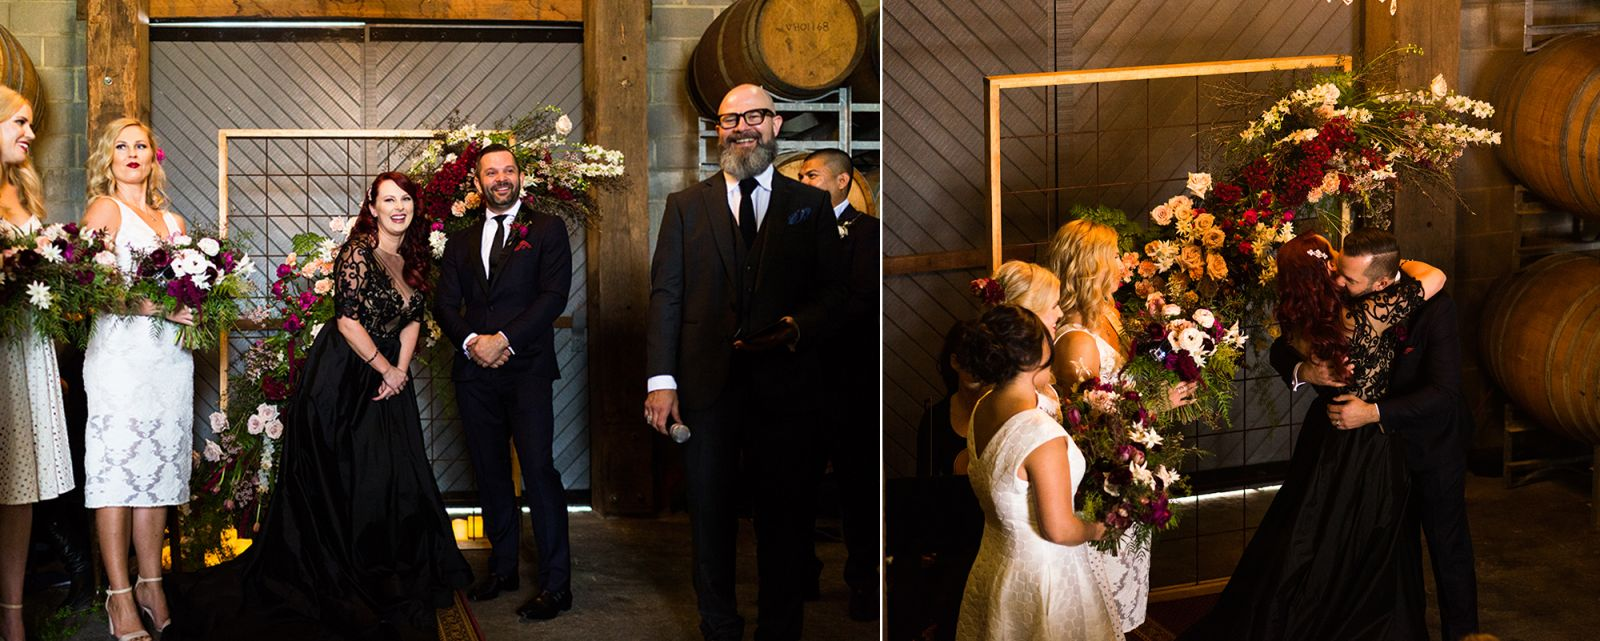 7_wedding-ceremony-captured-by-hunter-valley-wedding-photographer-at-wandin-valley